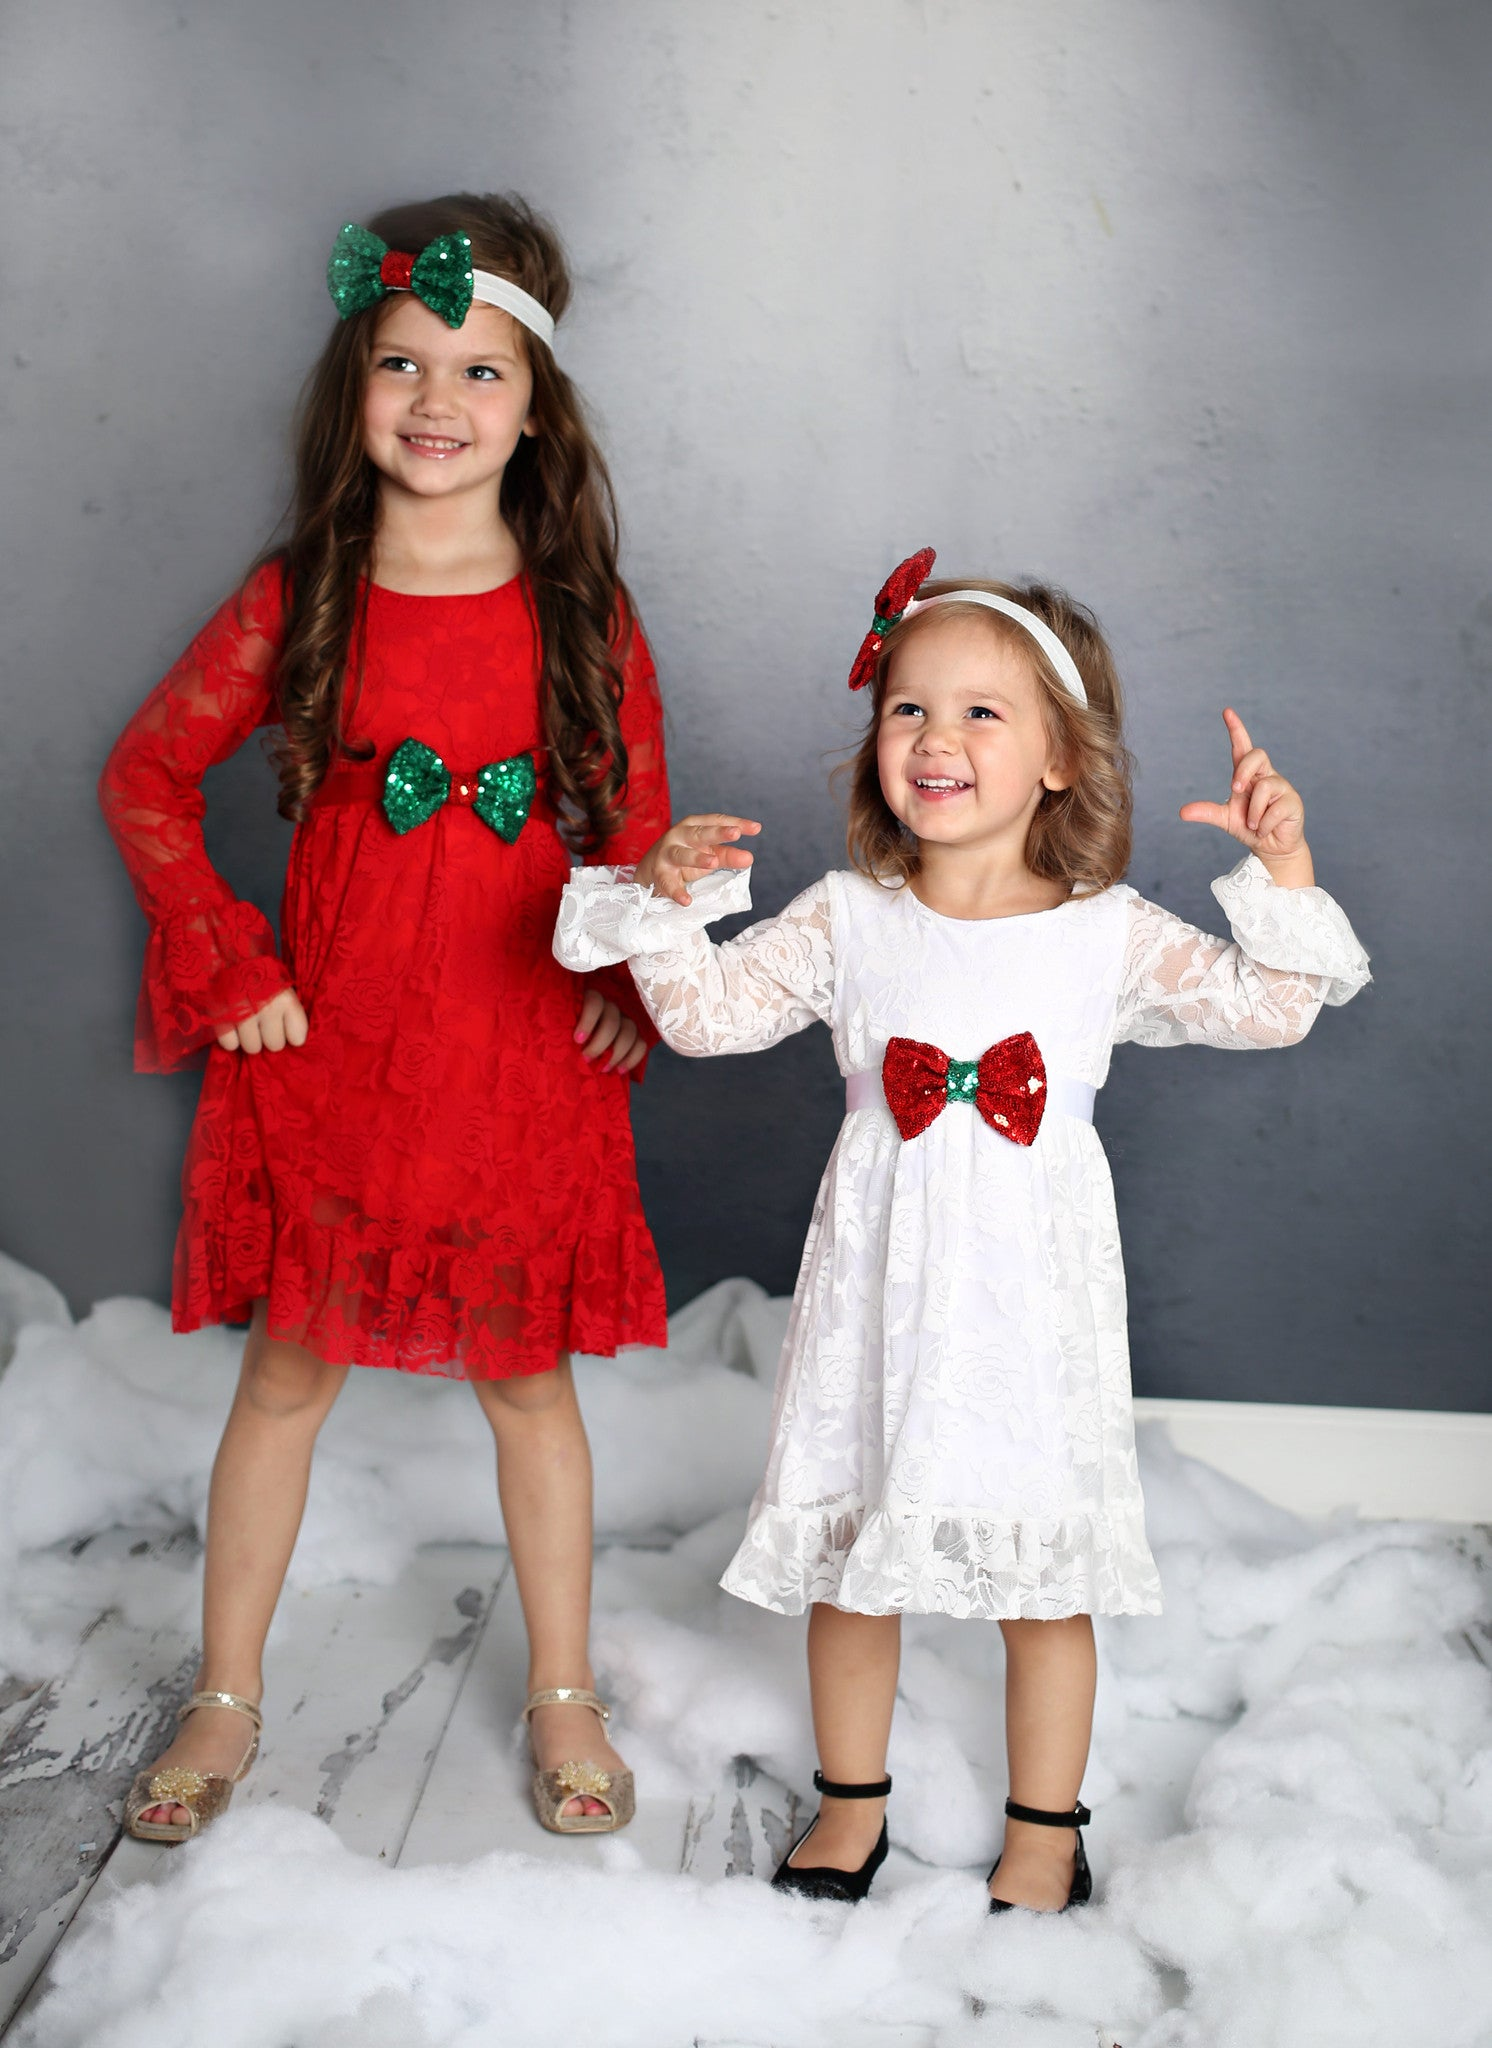 mommy and me outfits christmas outfits matching dresses sisters outfits